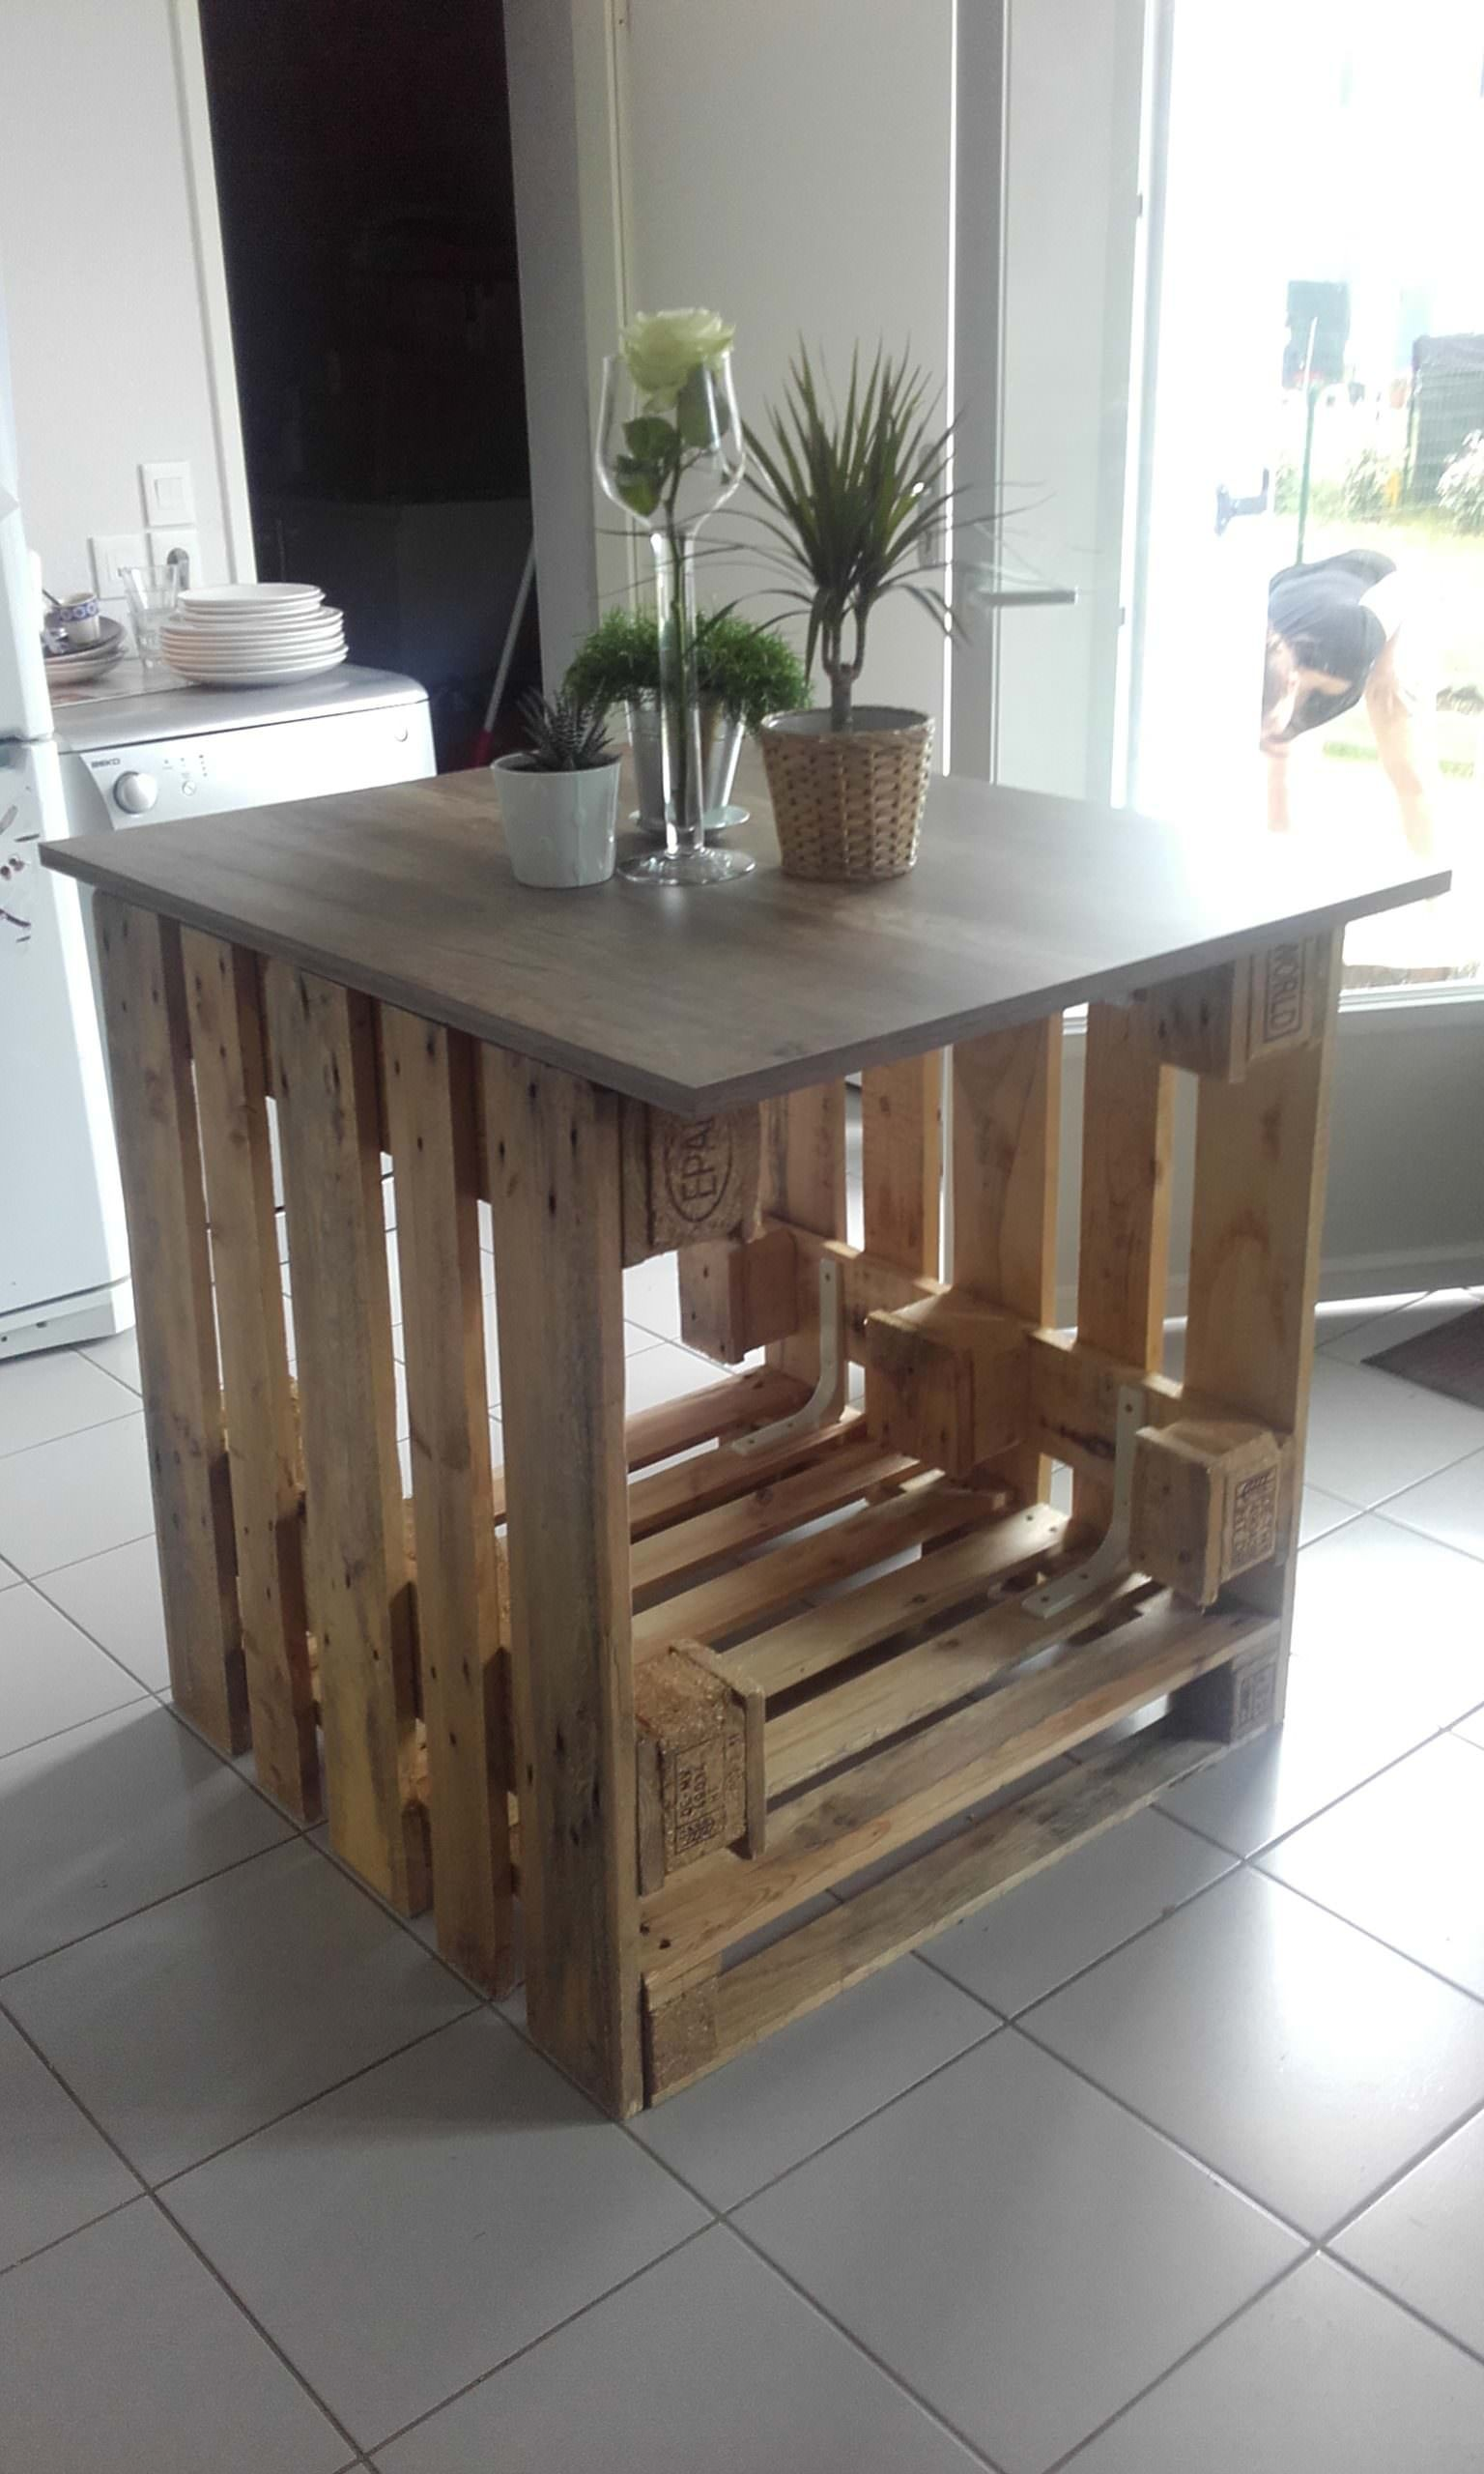 Diy Küche Palette îlot Central Cuisine Pallet Kitchen Island So Many